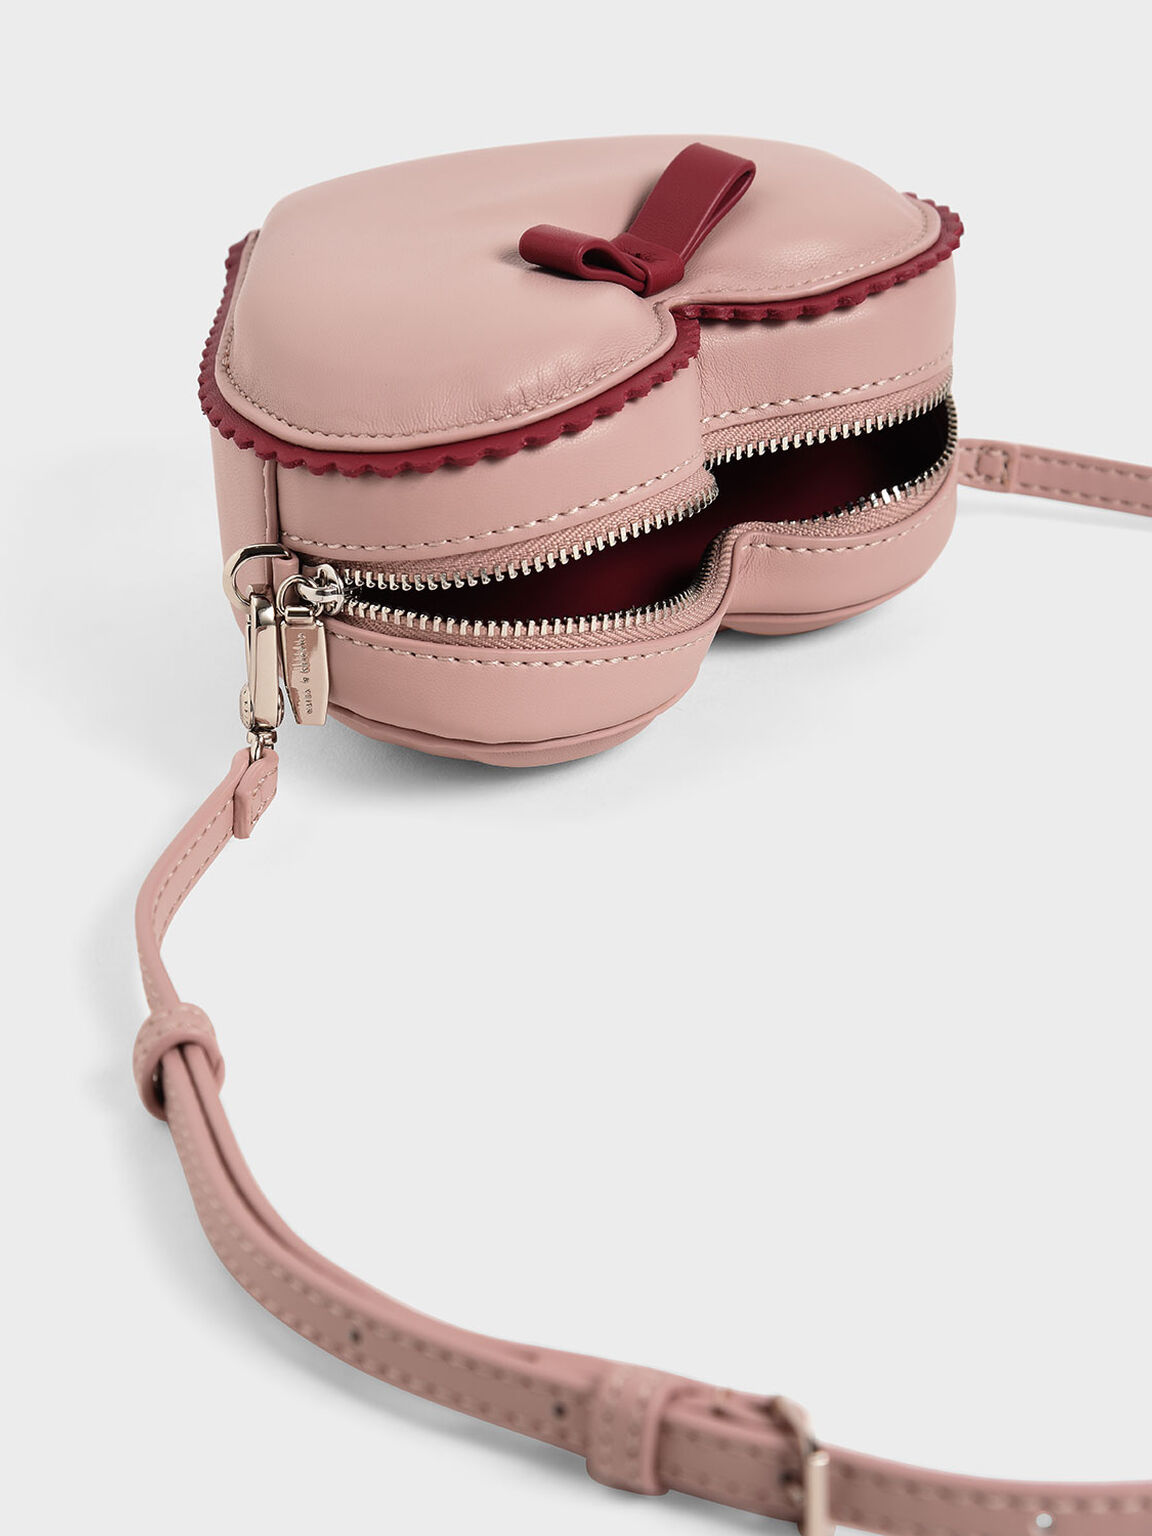 Heart-Shaped Crossbody Bag, Pink, hi-res